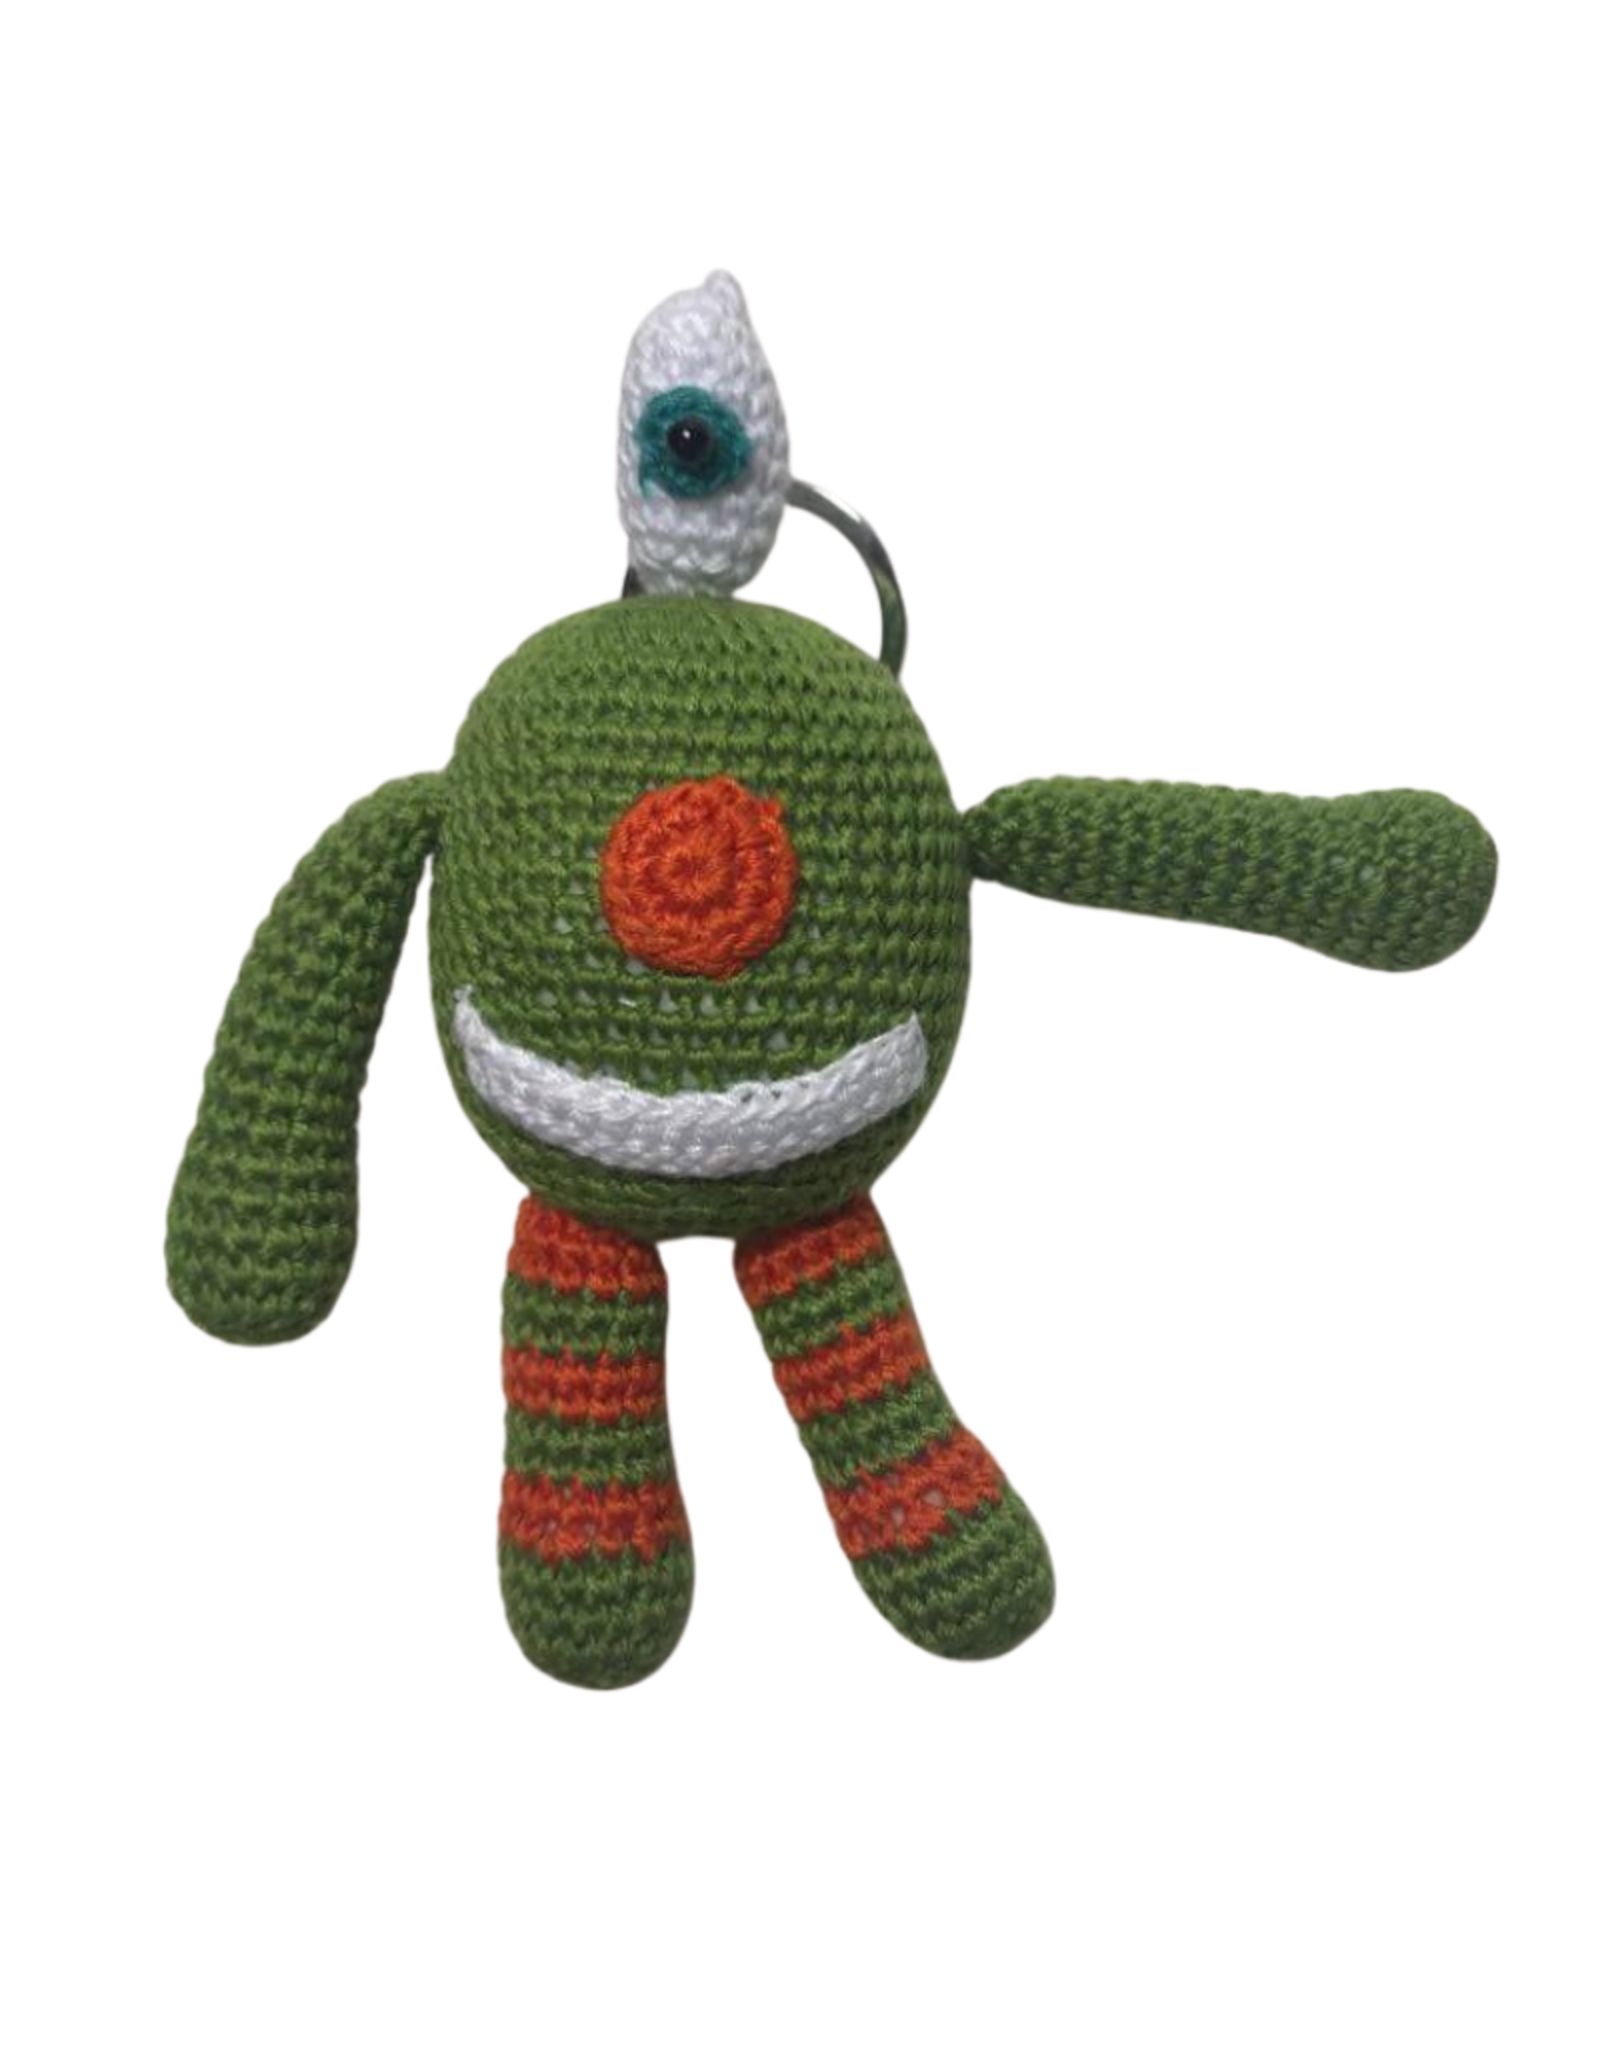 Pebbles Crocheted Monster Zipper Pull - Green